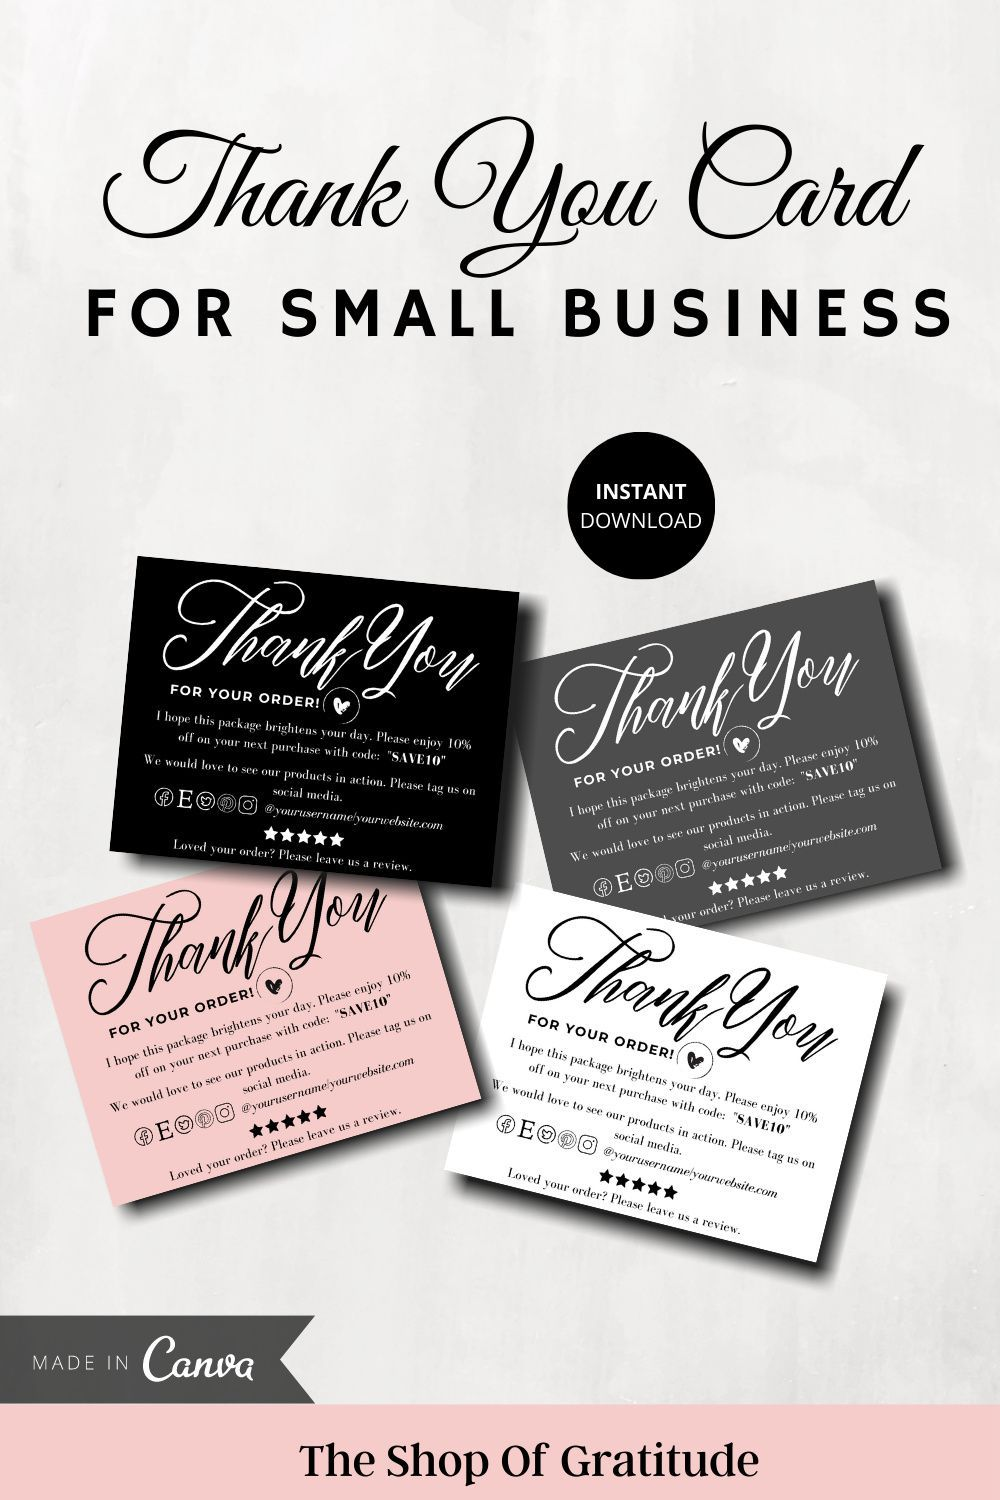 Thank You Card Template For Small Business Pintable And Easy Etsy In 2020 Thank You Card Template Printable Thank You Cards Business Thank You Cards